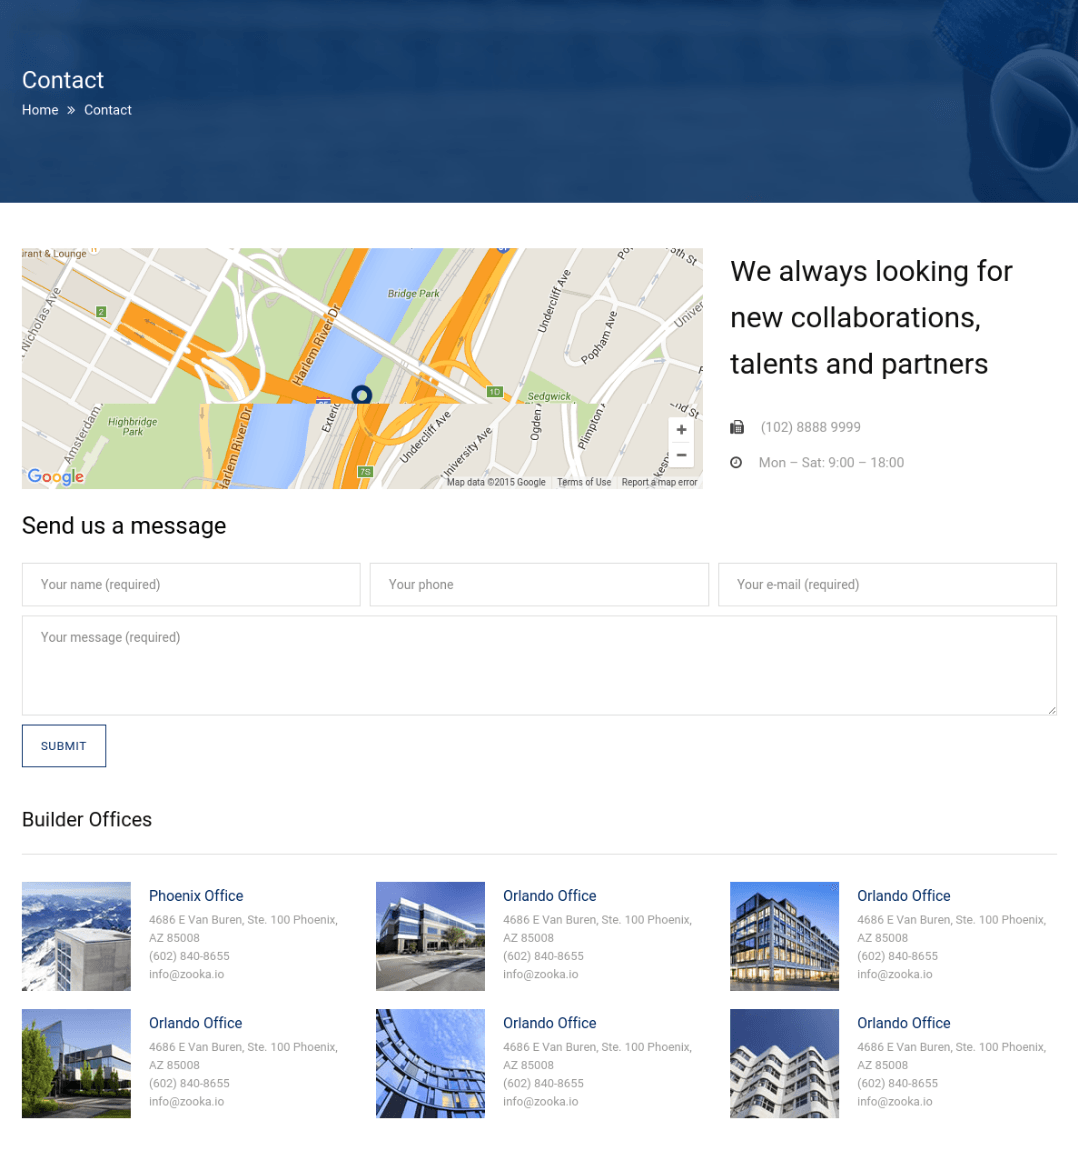 Contact Page - Builder